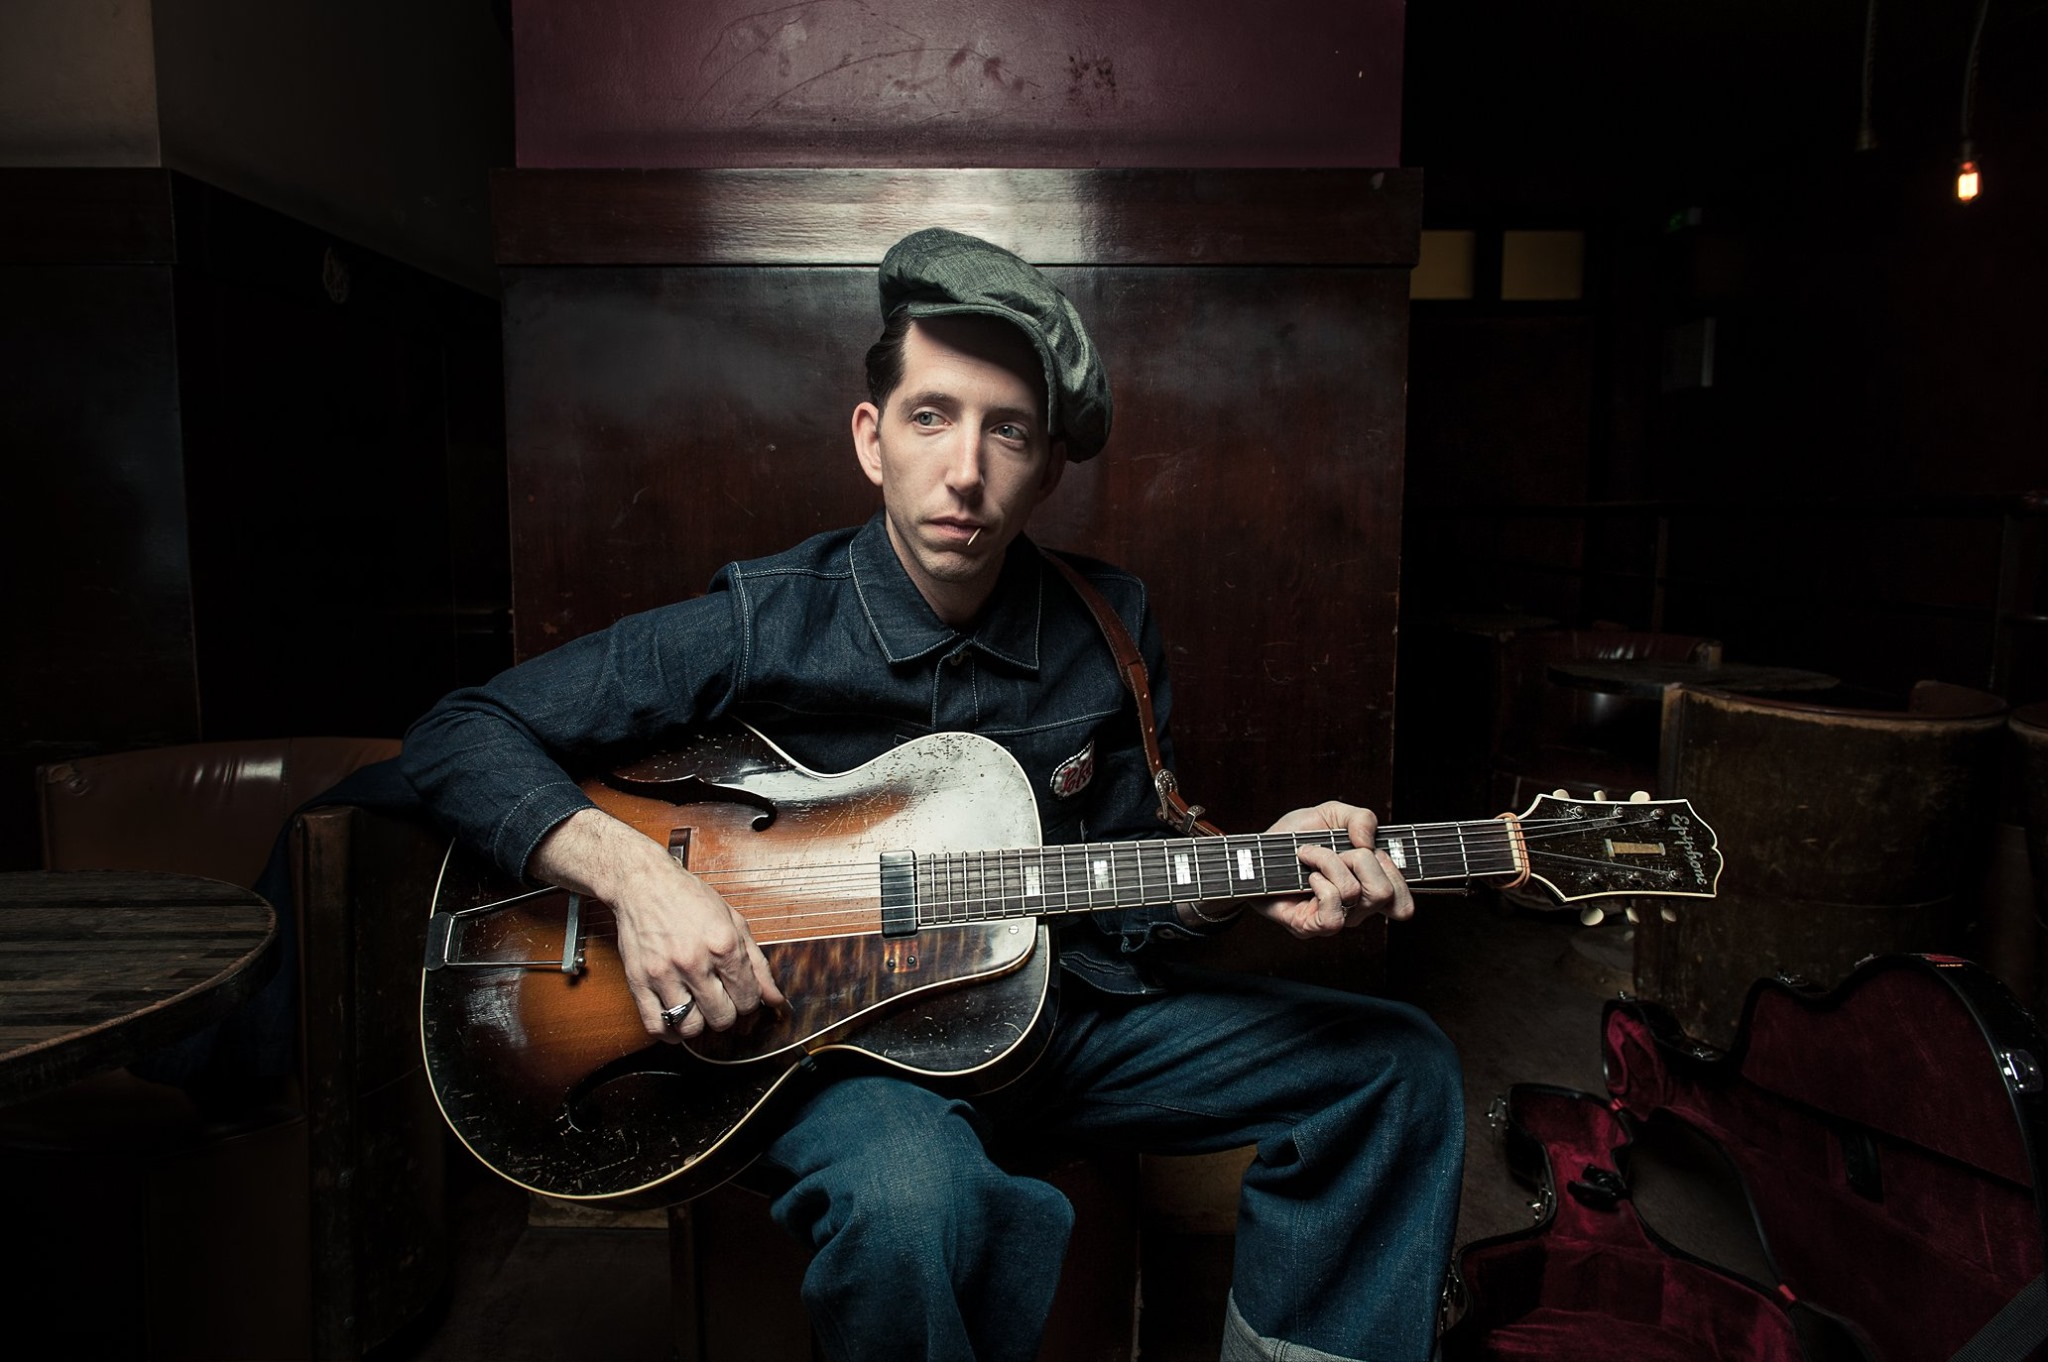 Pokey LaFarge – Old-timey Swing-influenced Blues and Folk